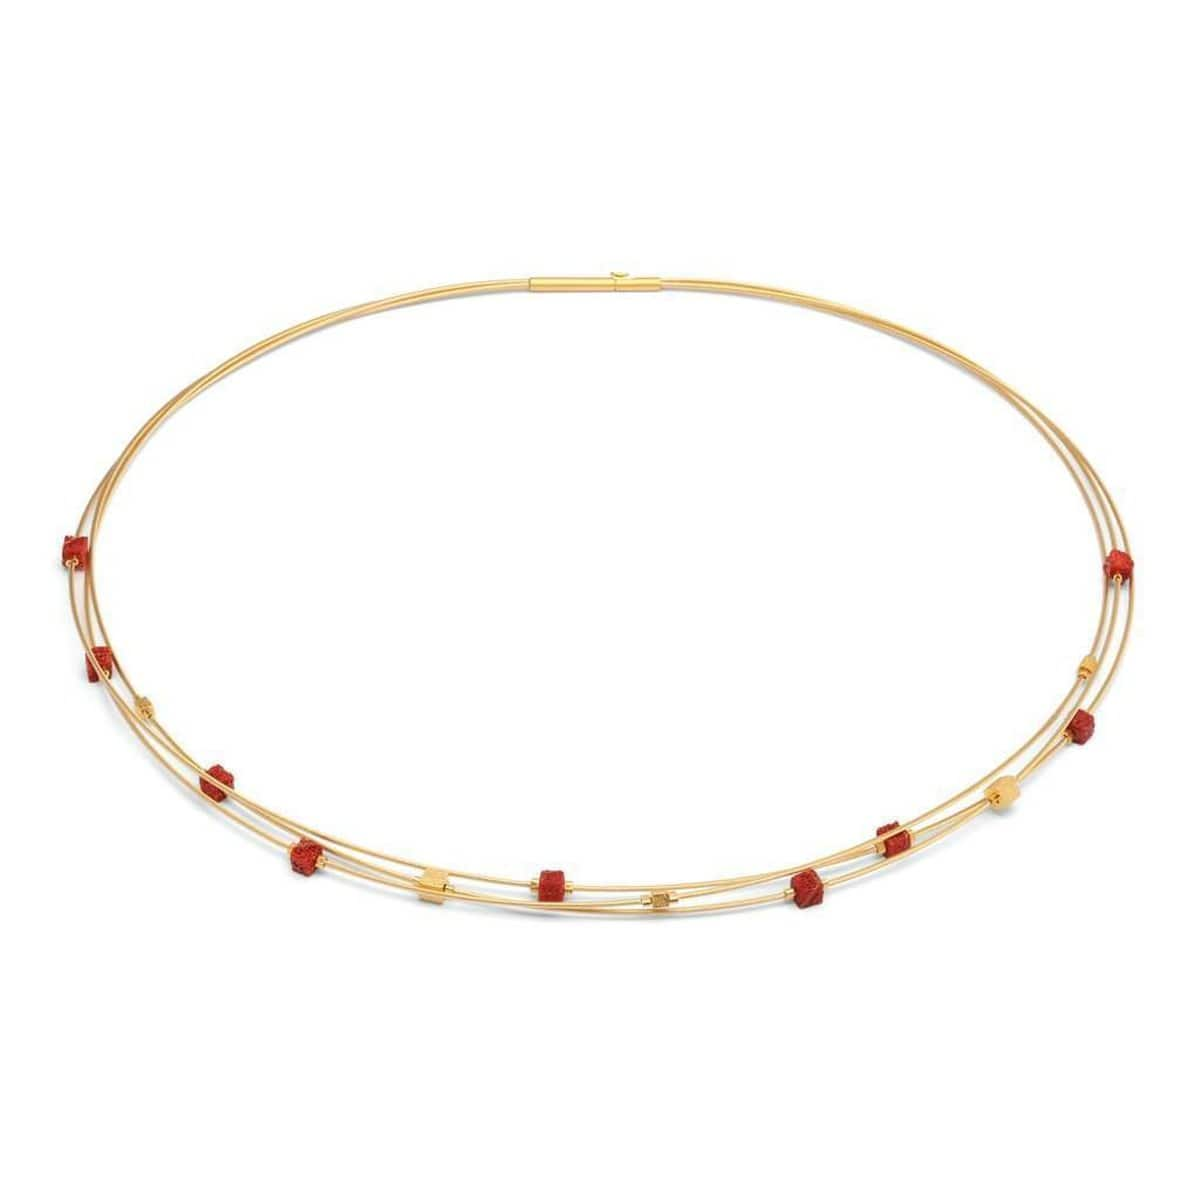 Lacuba Red Coral Necklace - 85335296-Bernd Wolf-Renee Taylor Gallery